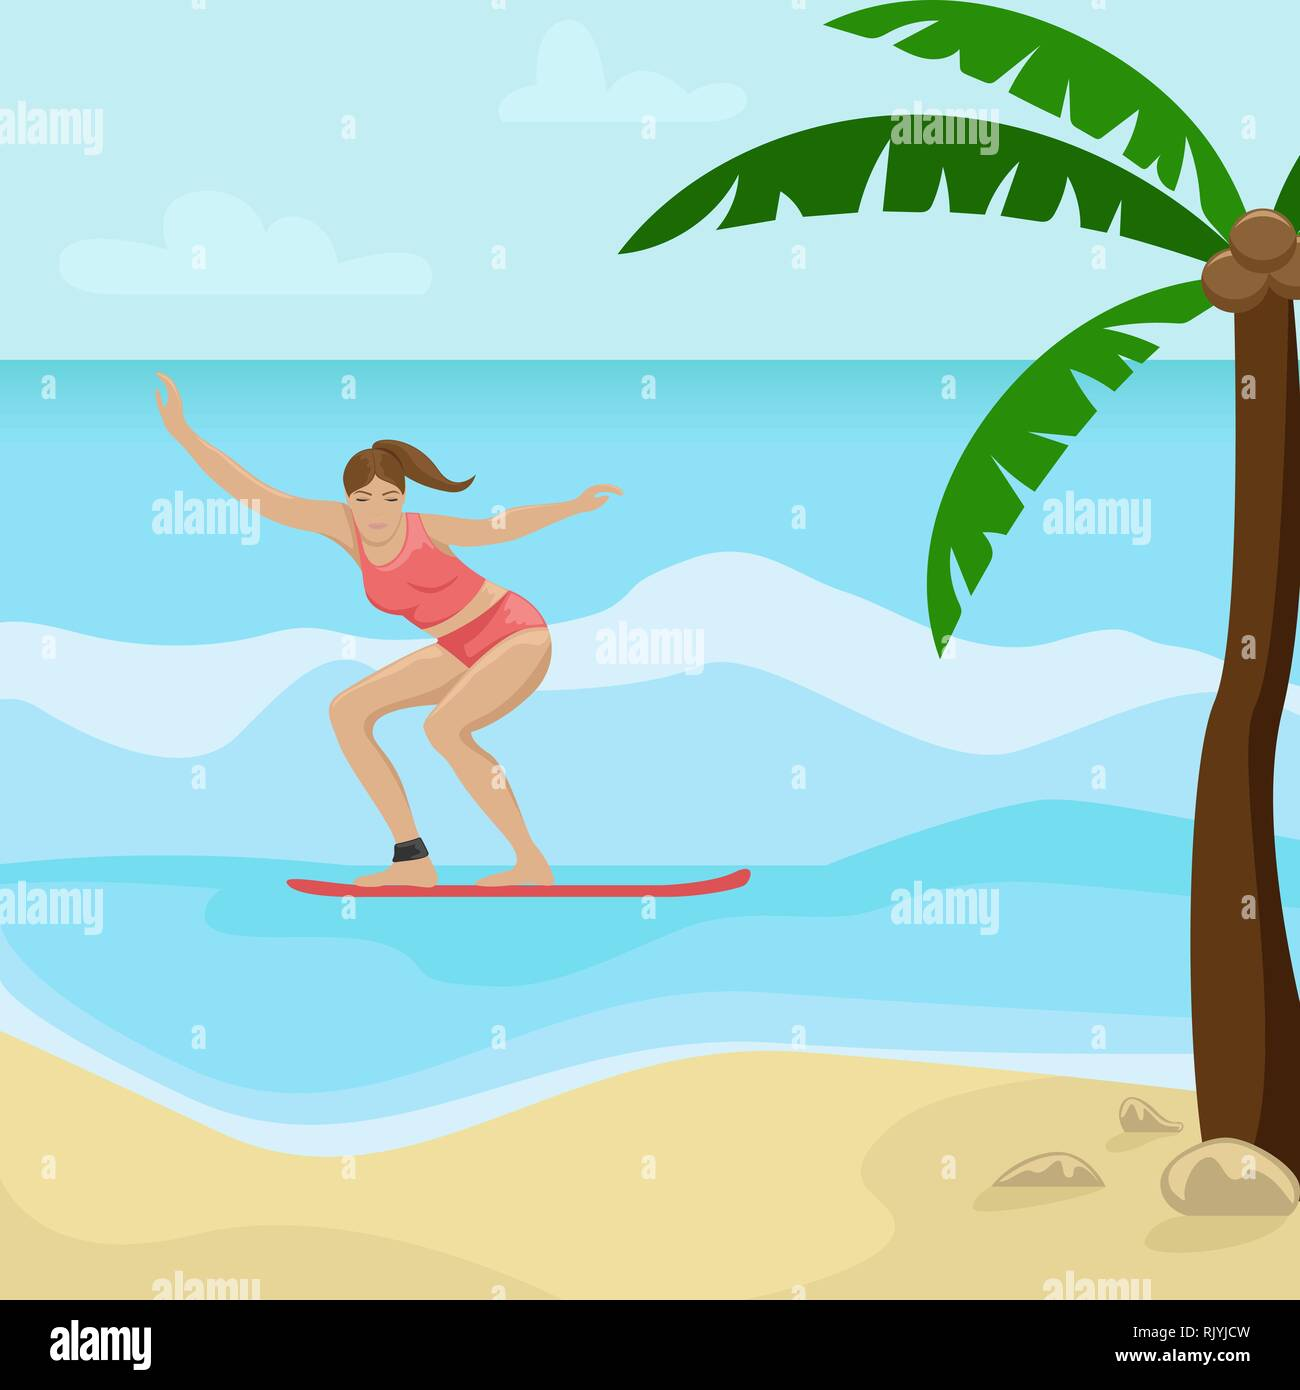 Beach landscape with palm trees. Girl surfing on the waves. Flat vector illustration. - Stock Vector